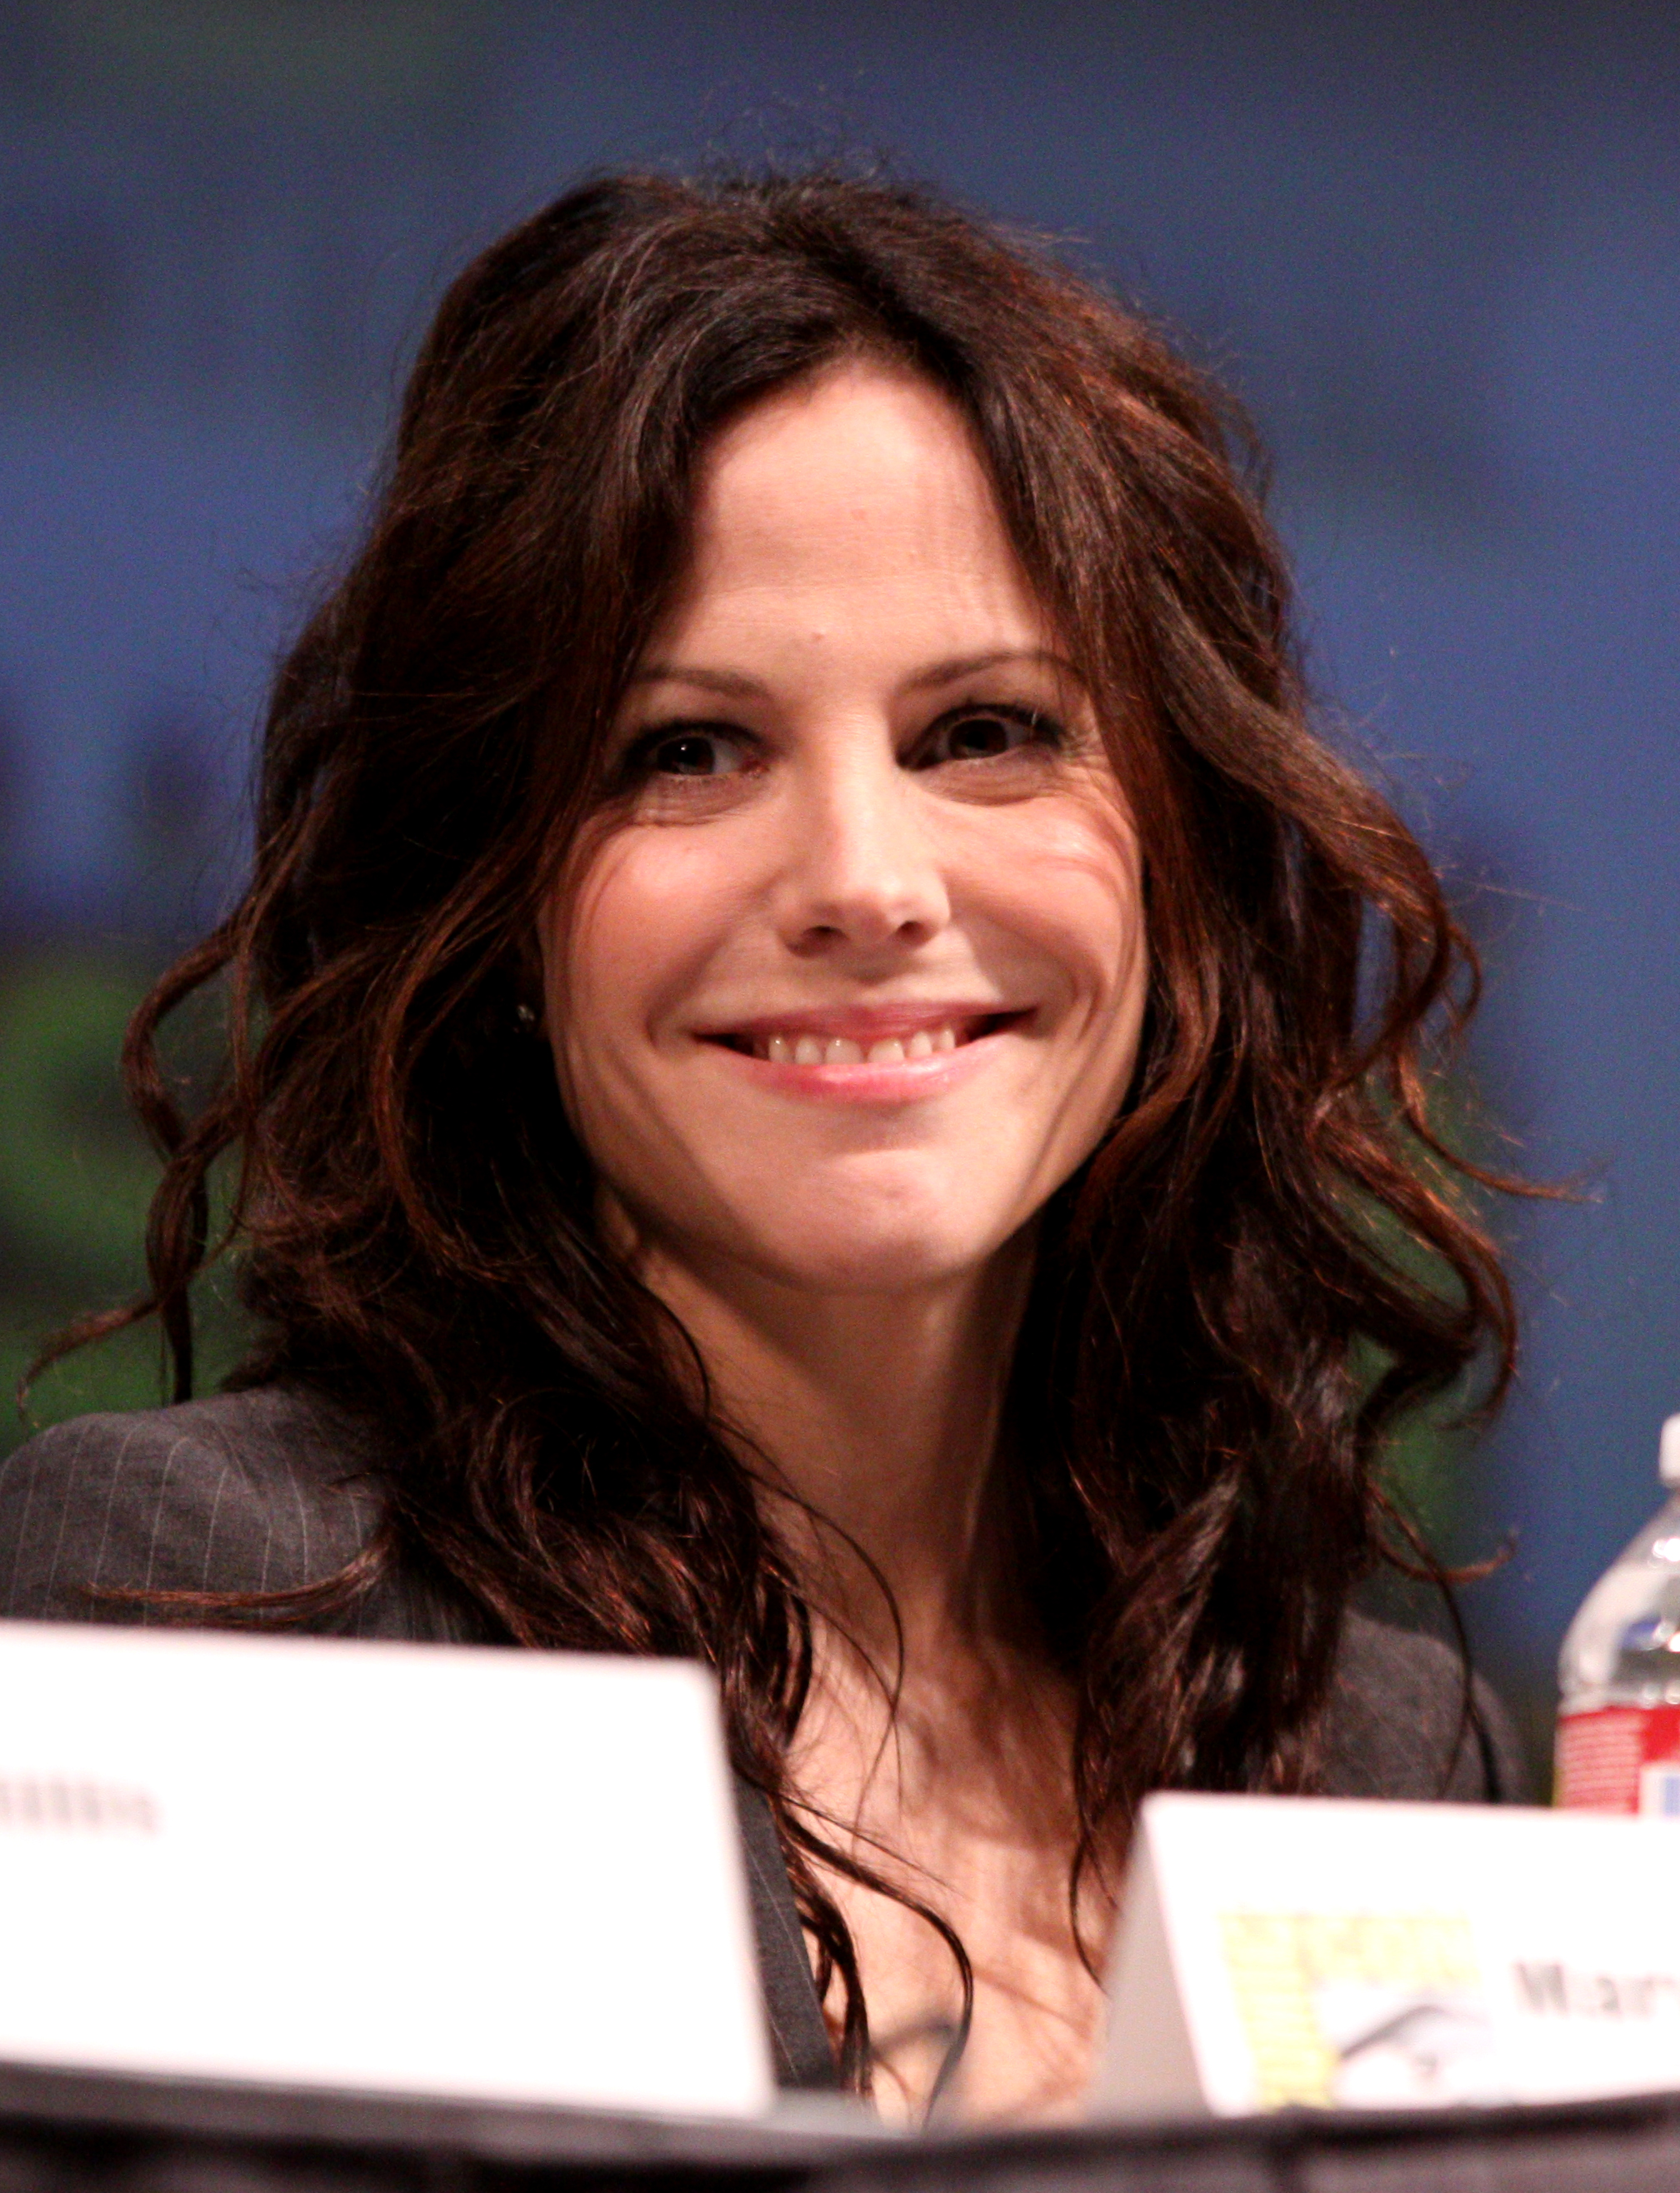 Depiction of Mary-Louise Parker